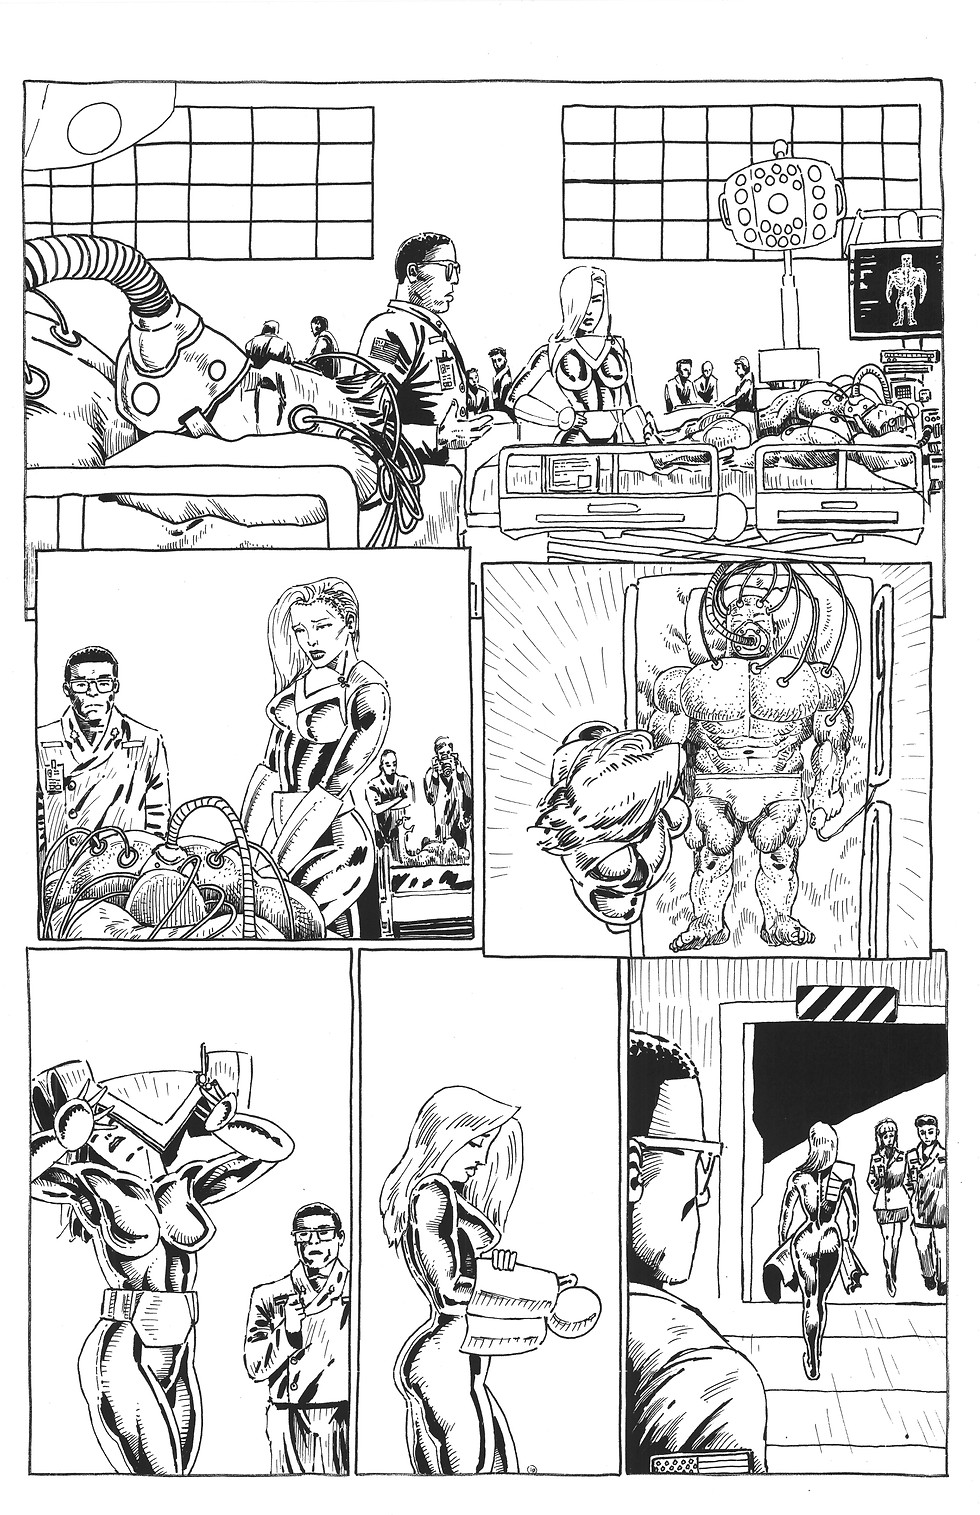 Live Wire Issue 1 (pages 10-14).jpg